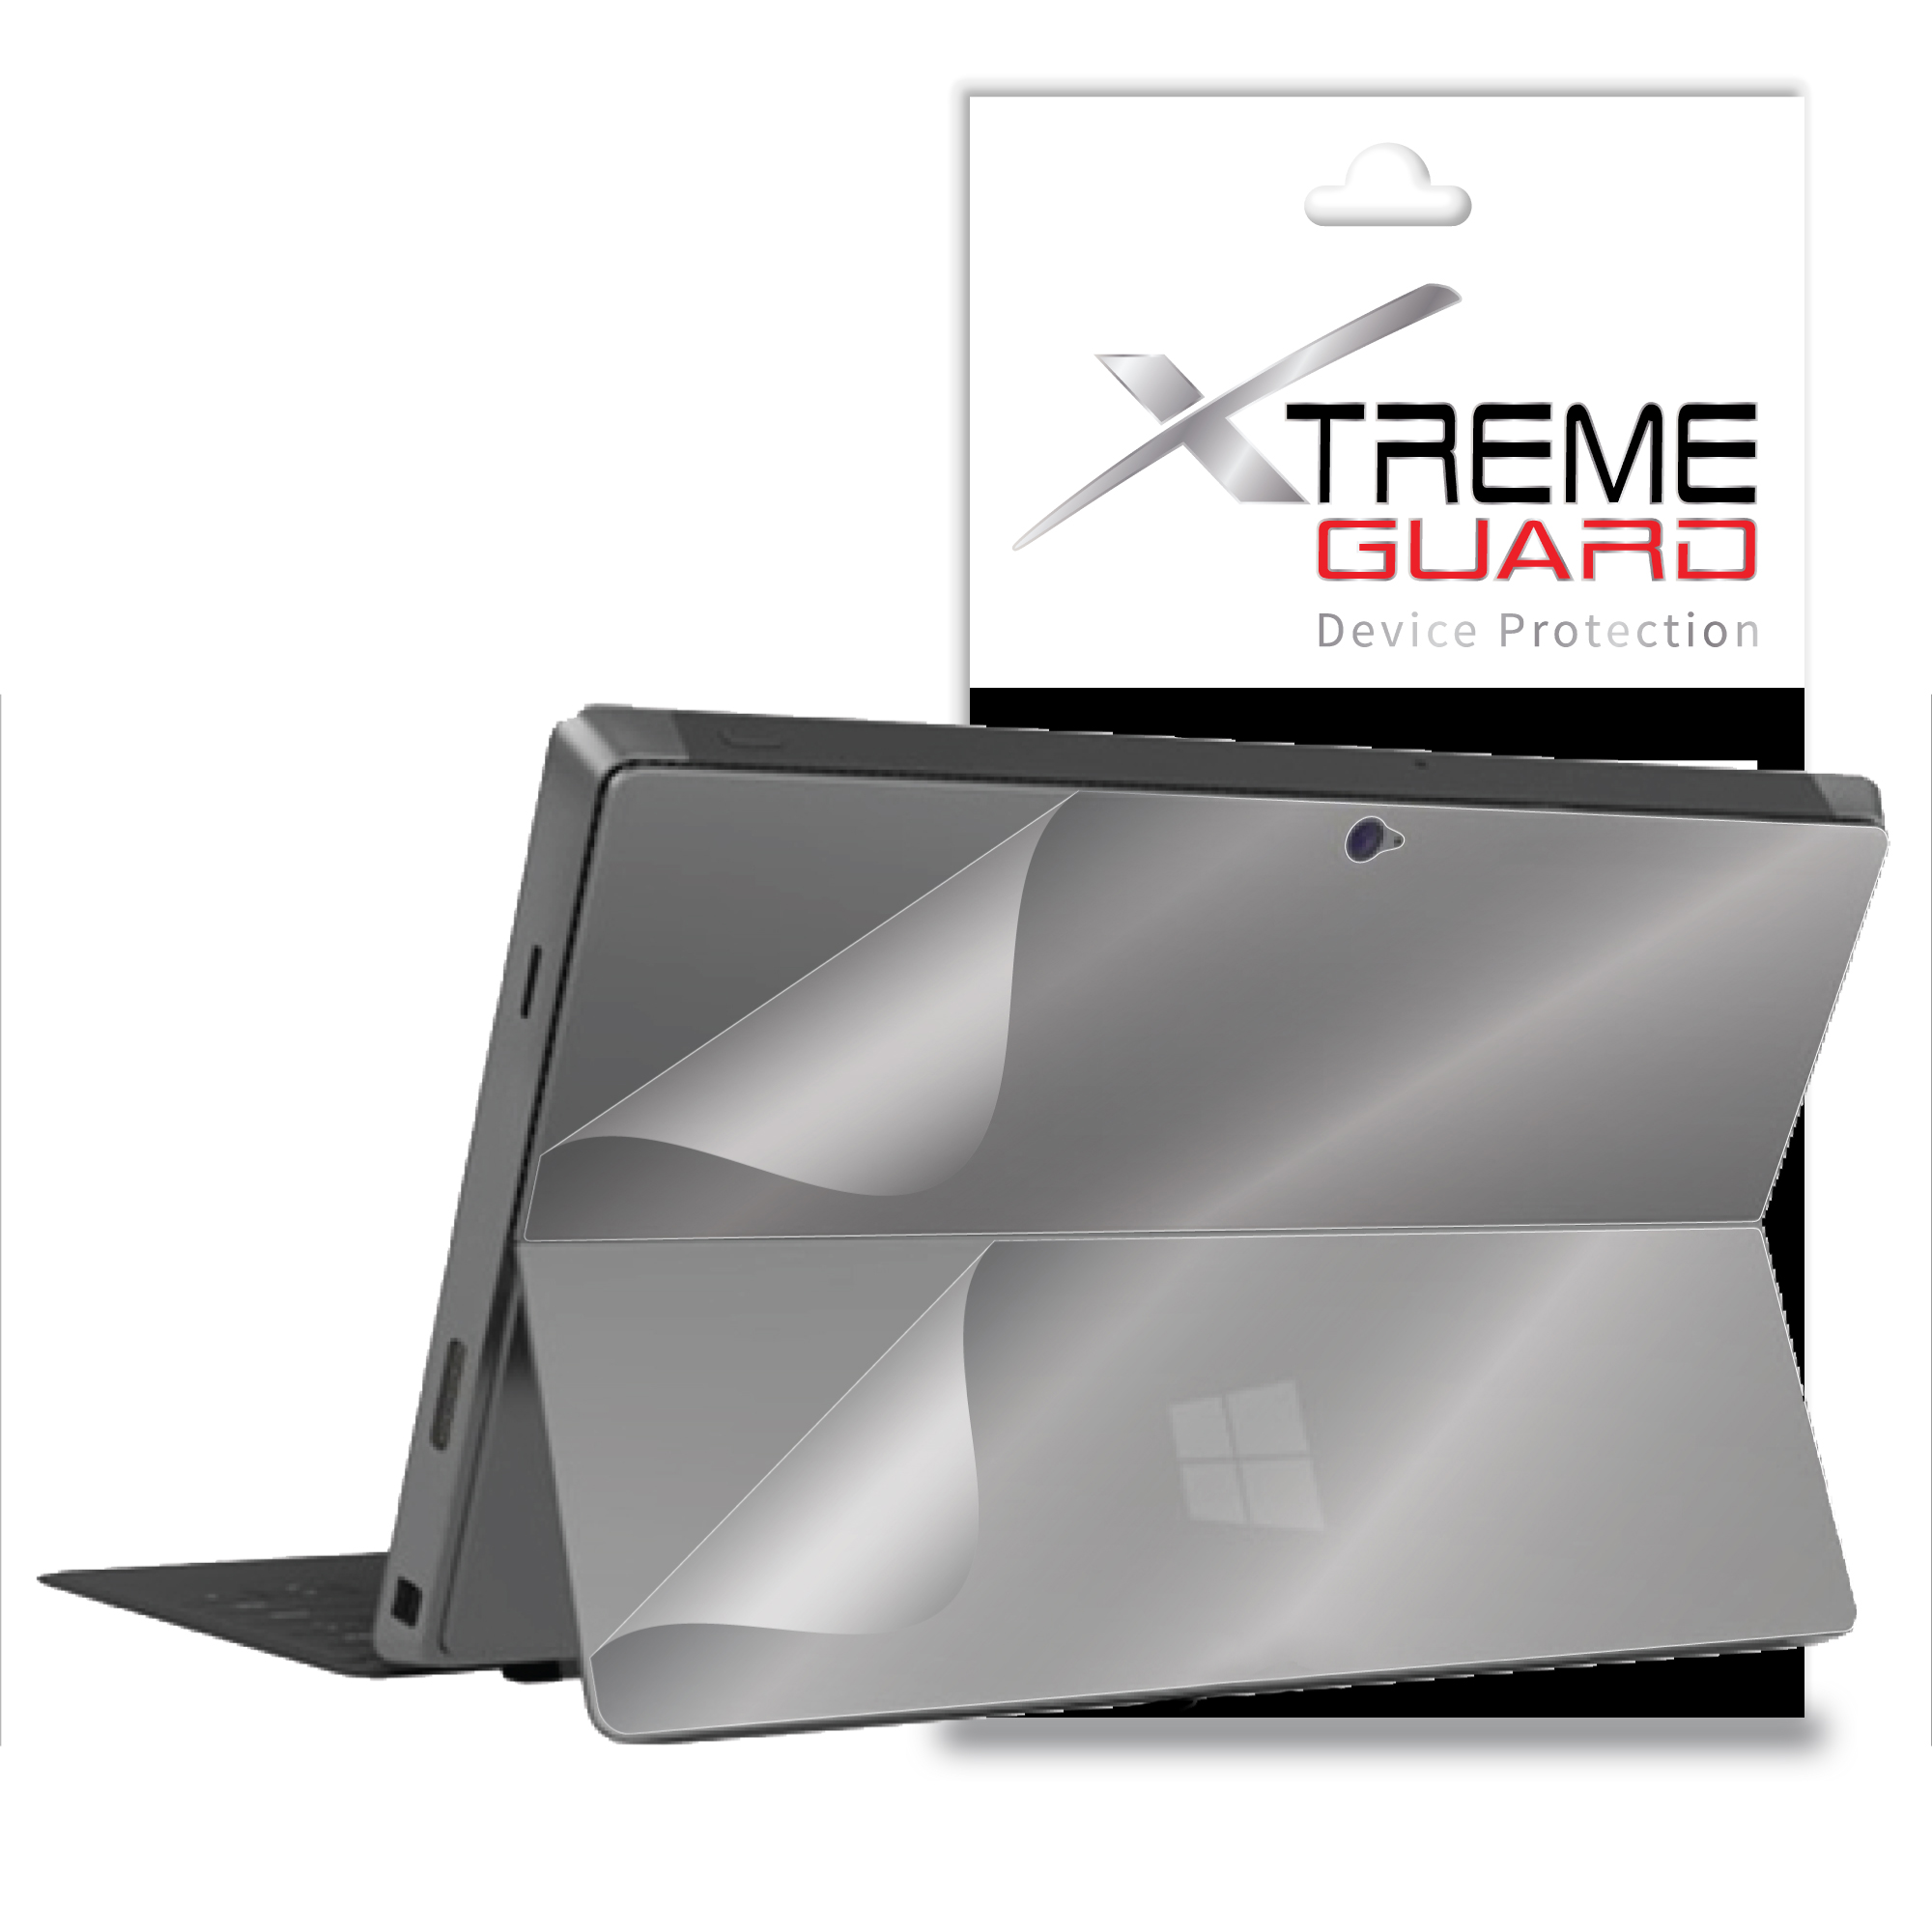 XtremeGuard Screen Protector Shield For Microsoft Surface Pro 2 Ultra Clear